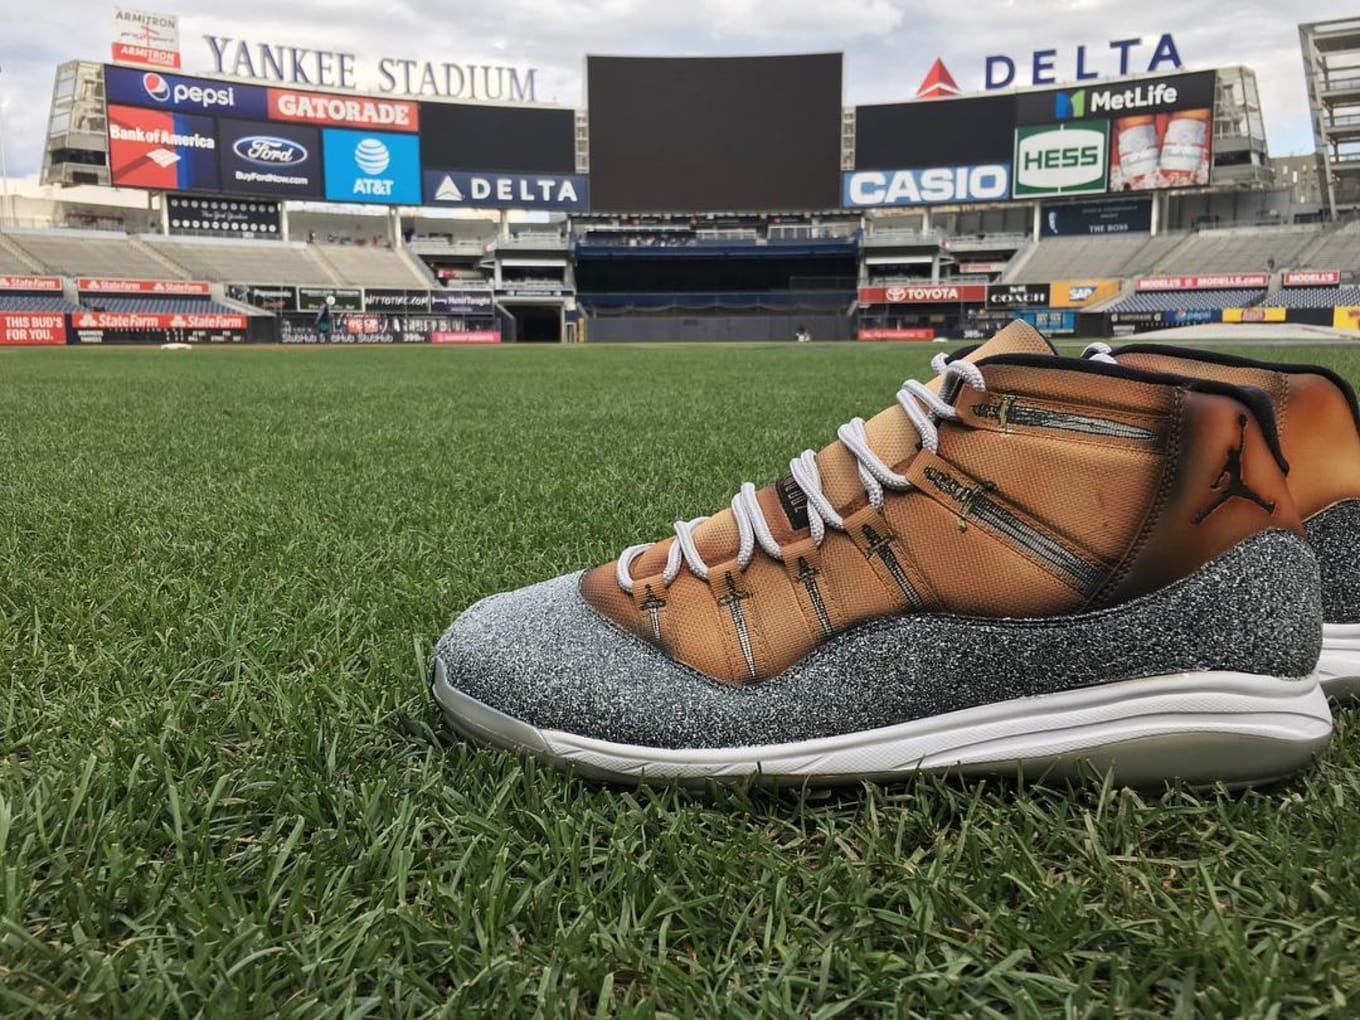 525bd0aa1fa C.C. Sabathia s Custom Air Jordans Celebrate  Game of Thrones  Finale. A  strong finish to Players Weekend.